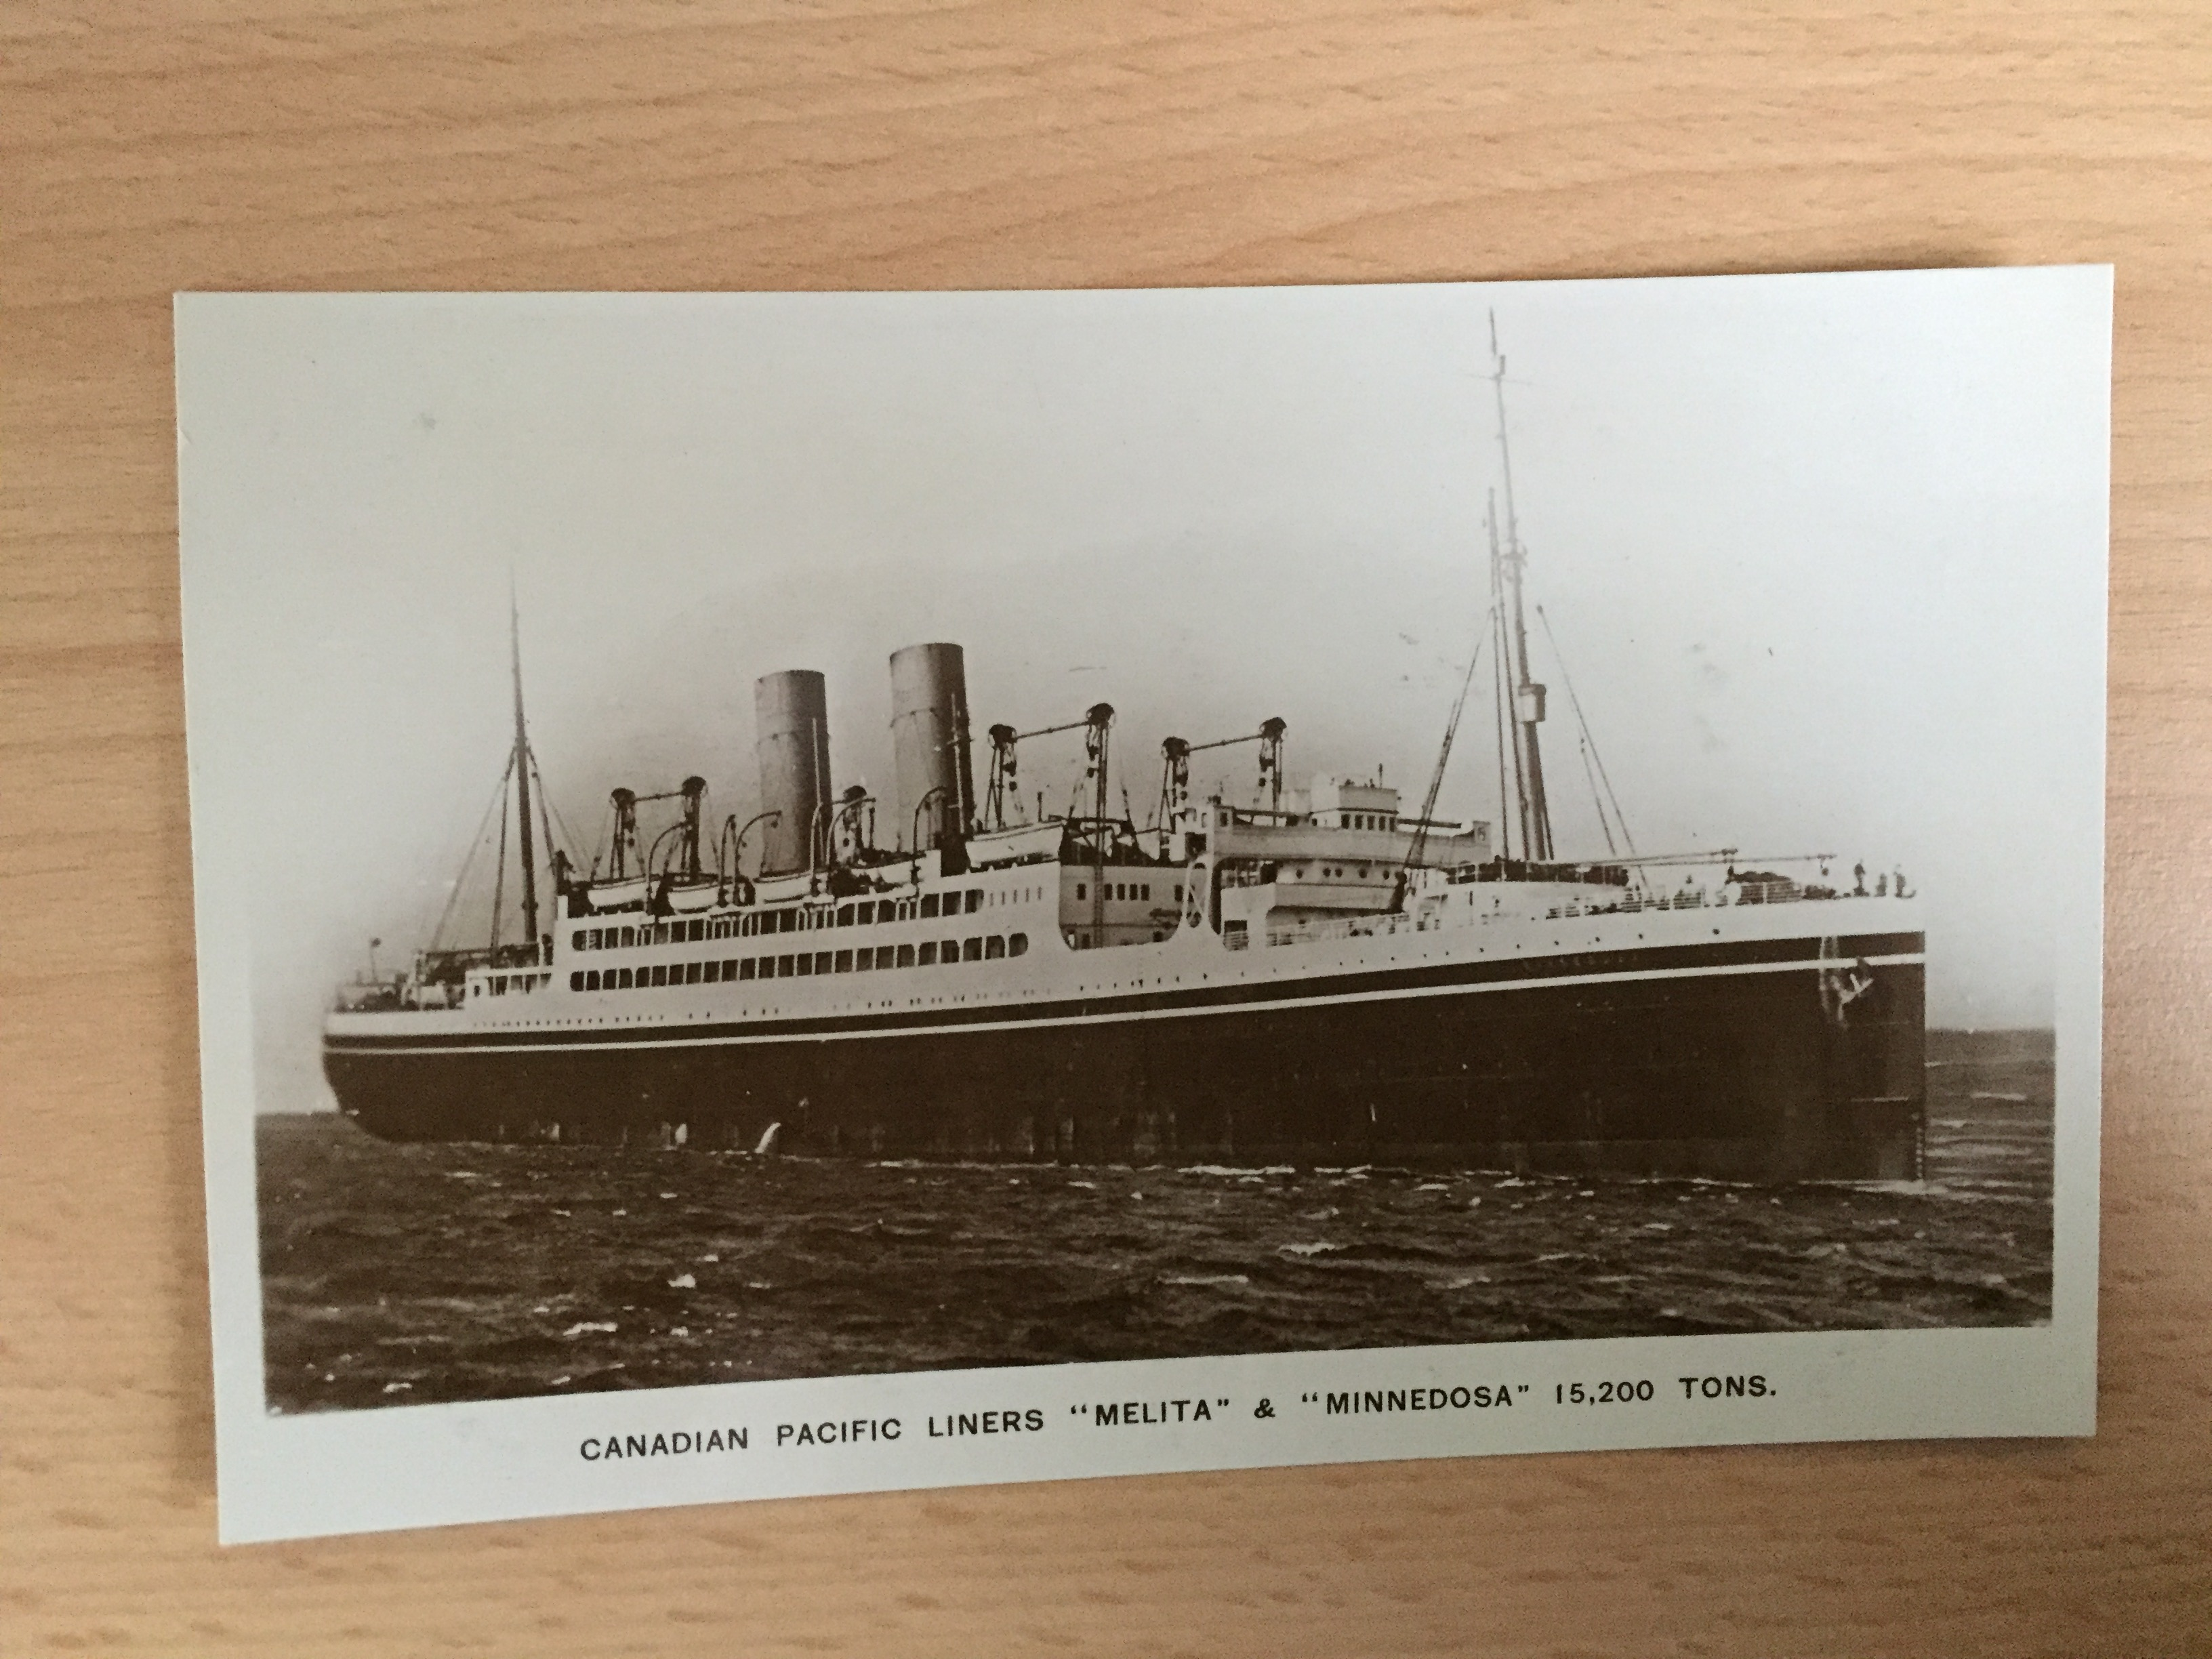 B/W POSTCARD OF THE CANADIAN PACIFIC LINE VESSEL THE MELITA